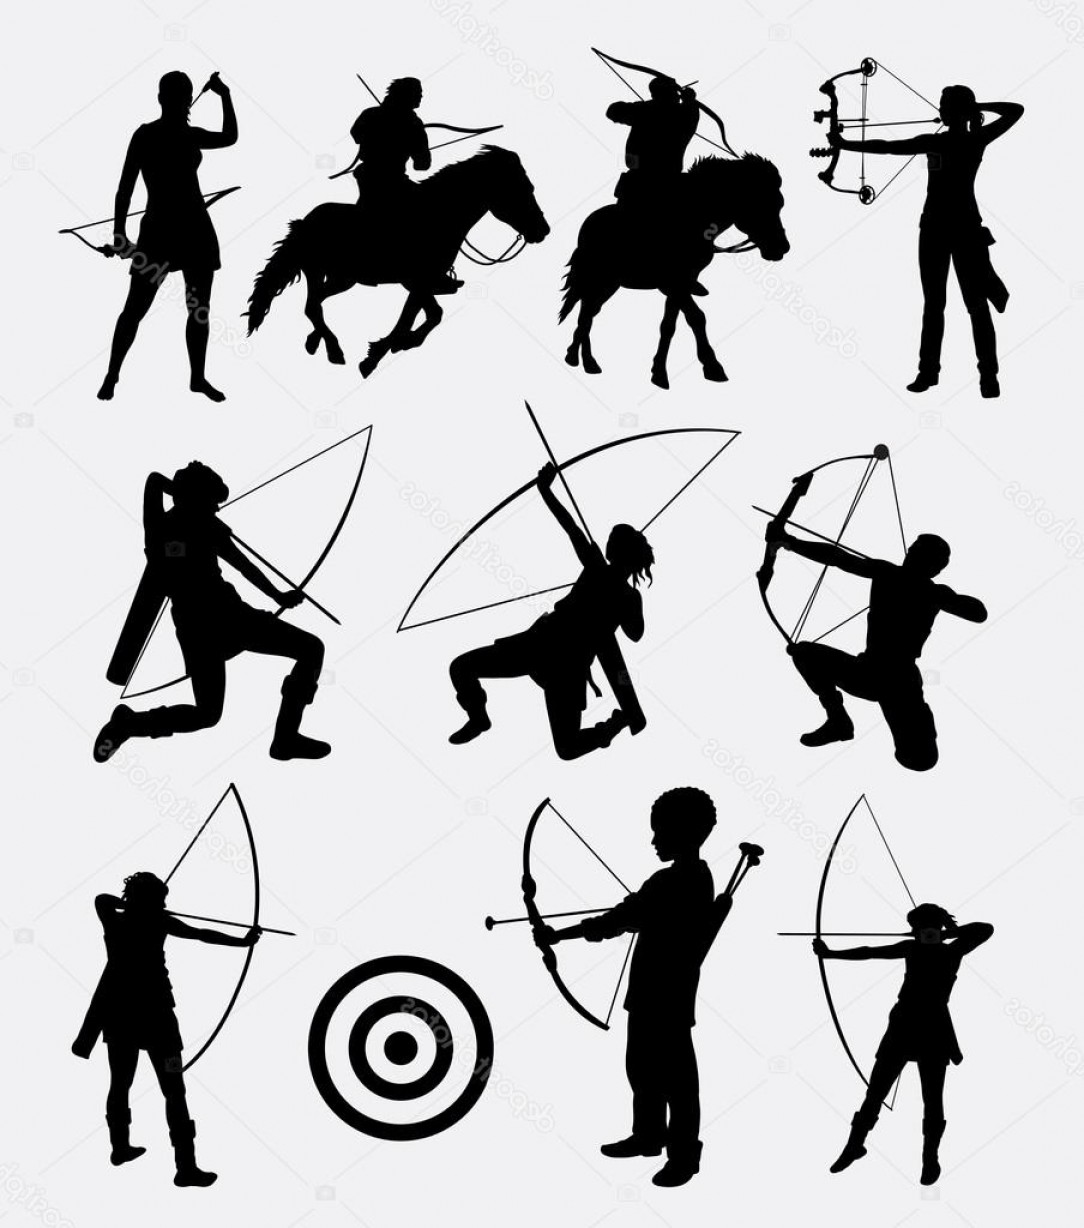 Vector Archery Silhouette: Stock Illustration Archery Dart People Sport Silhouette